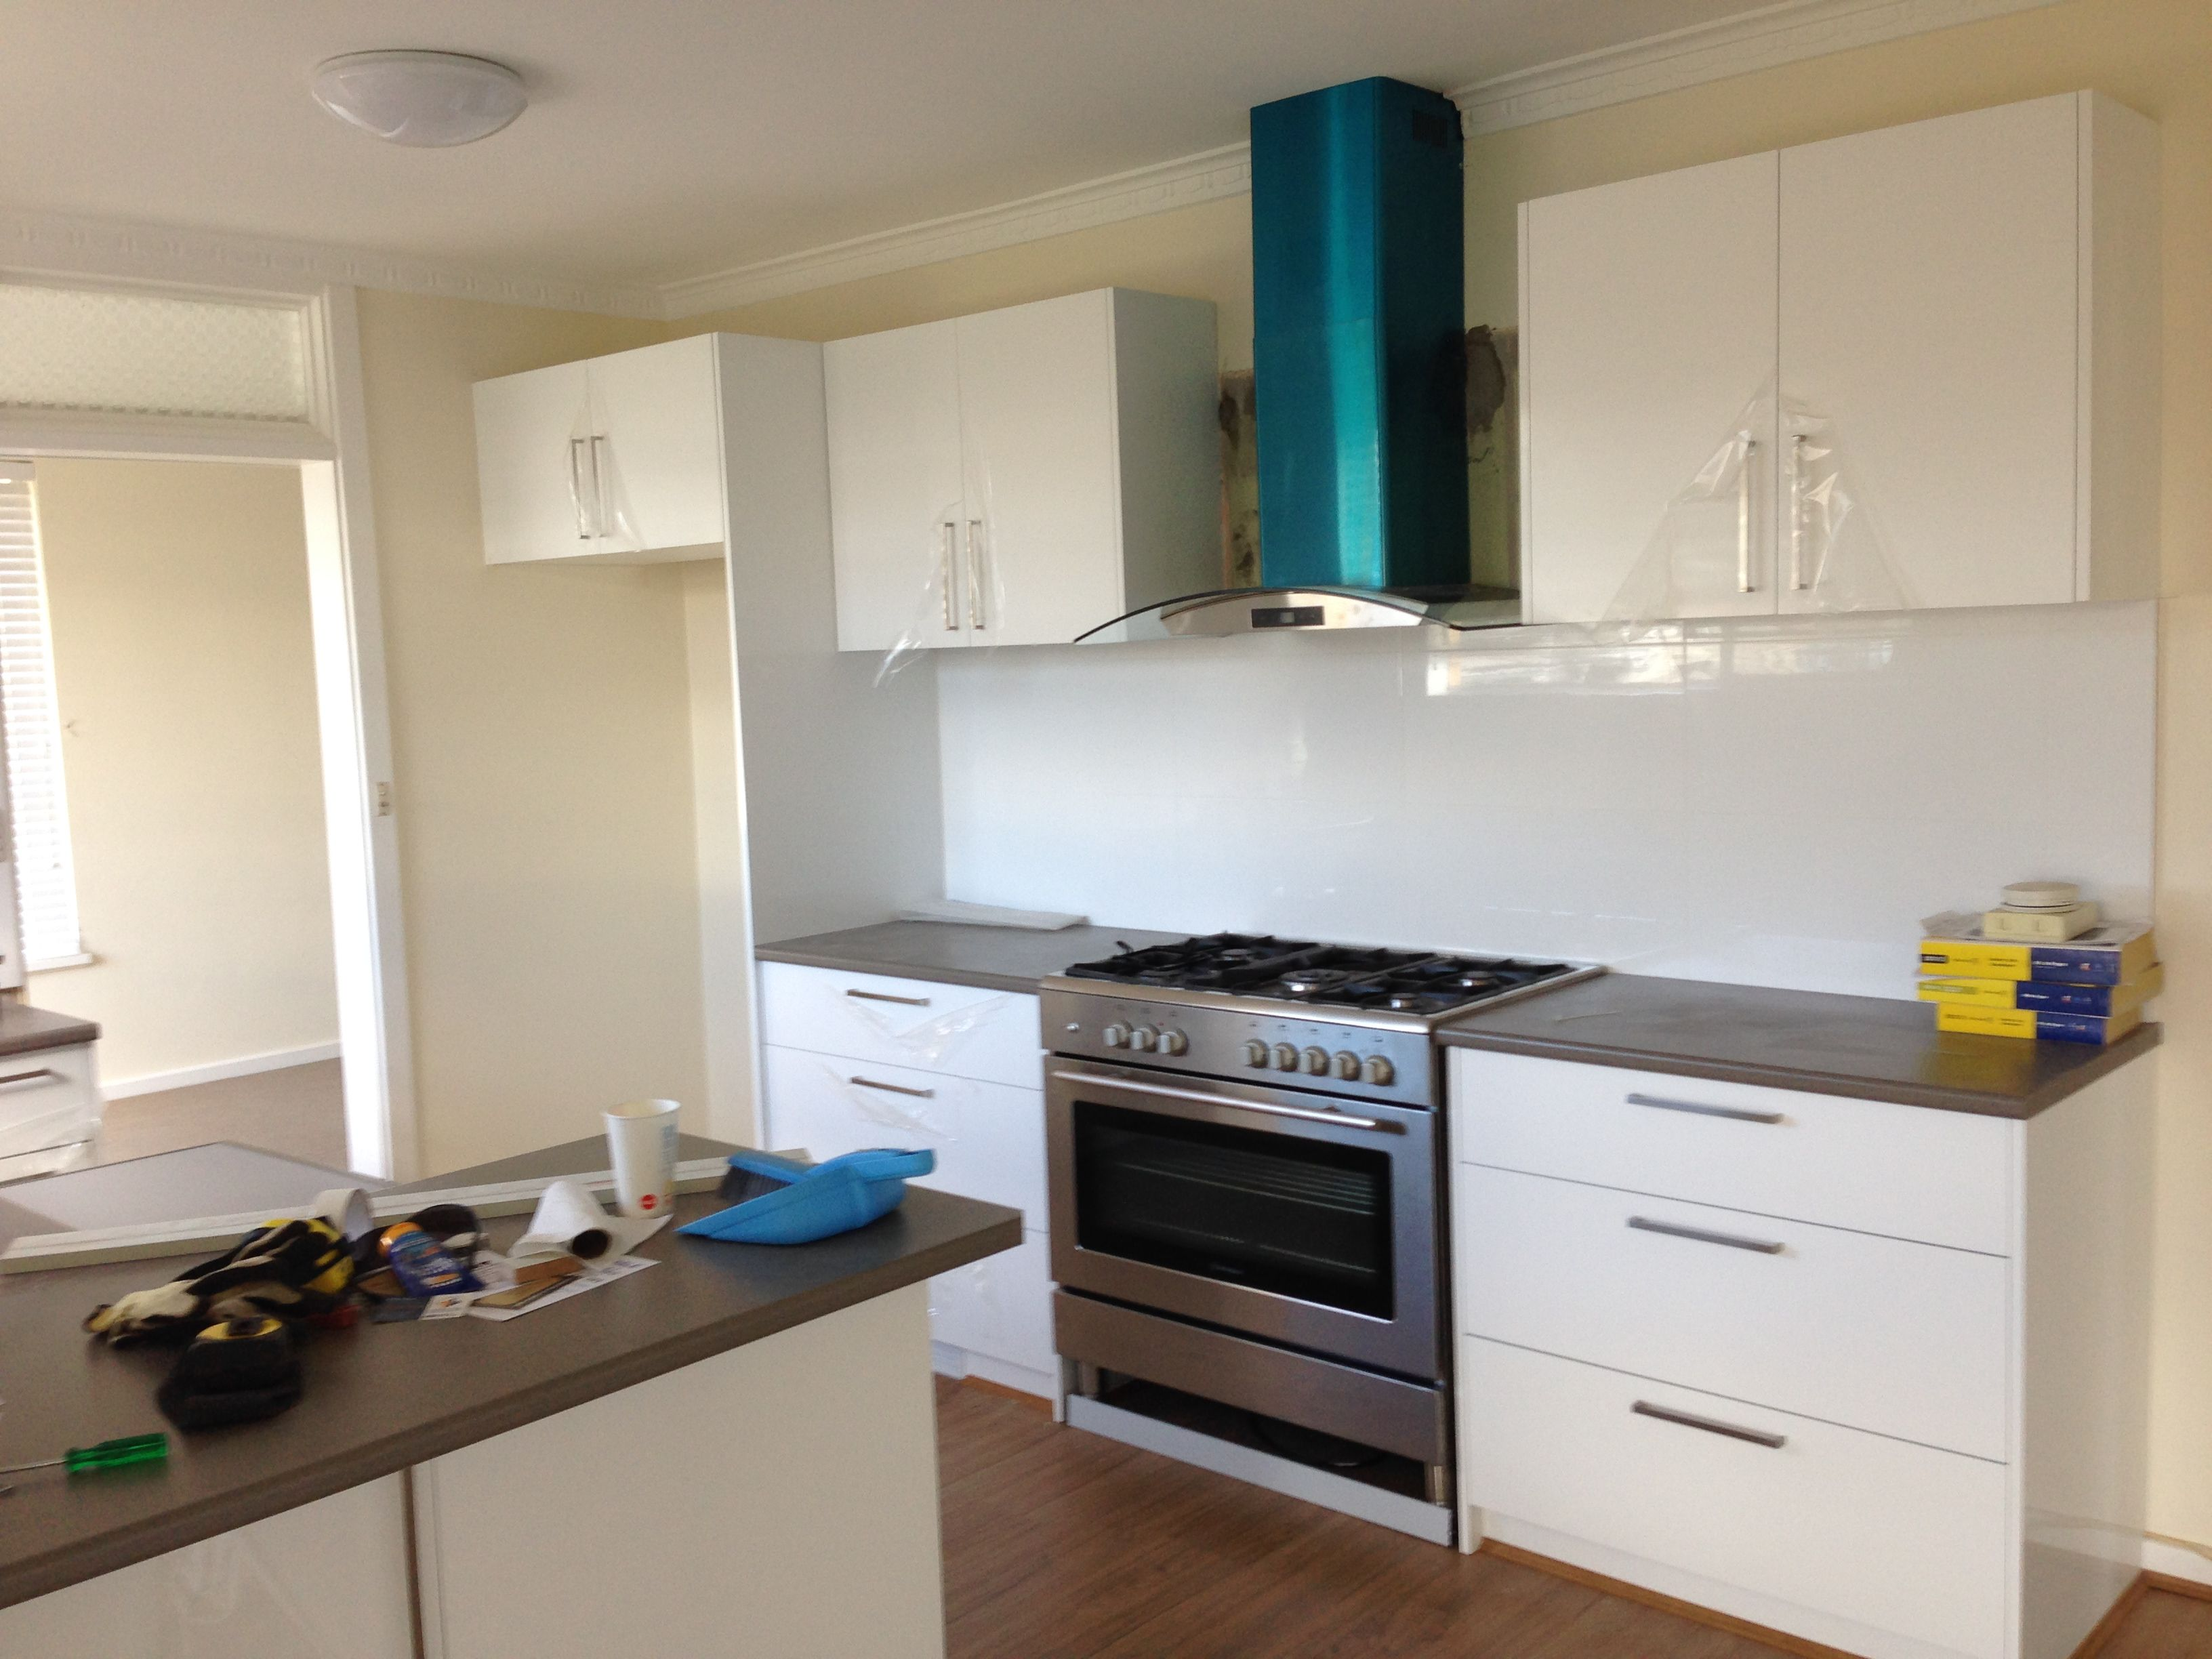 Contempo gloss white vinyl flatpack kitchen cabinets never go out of ...